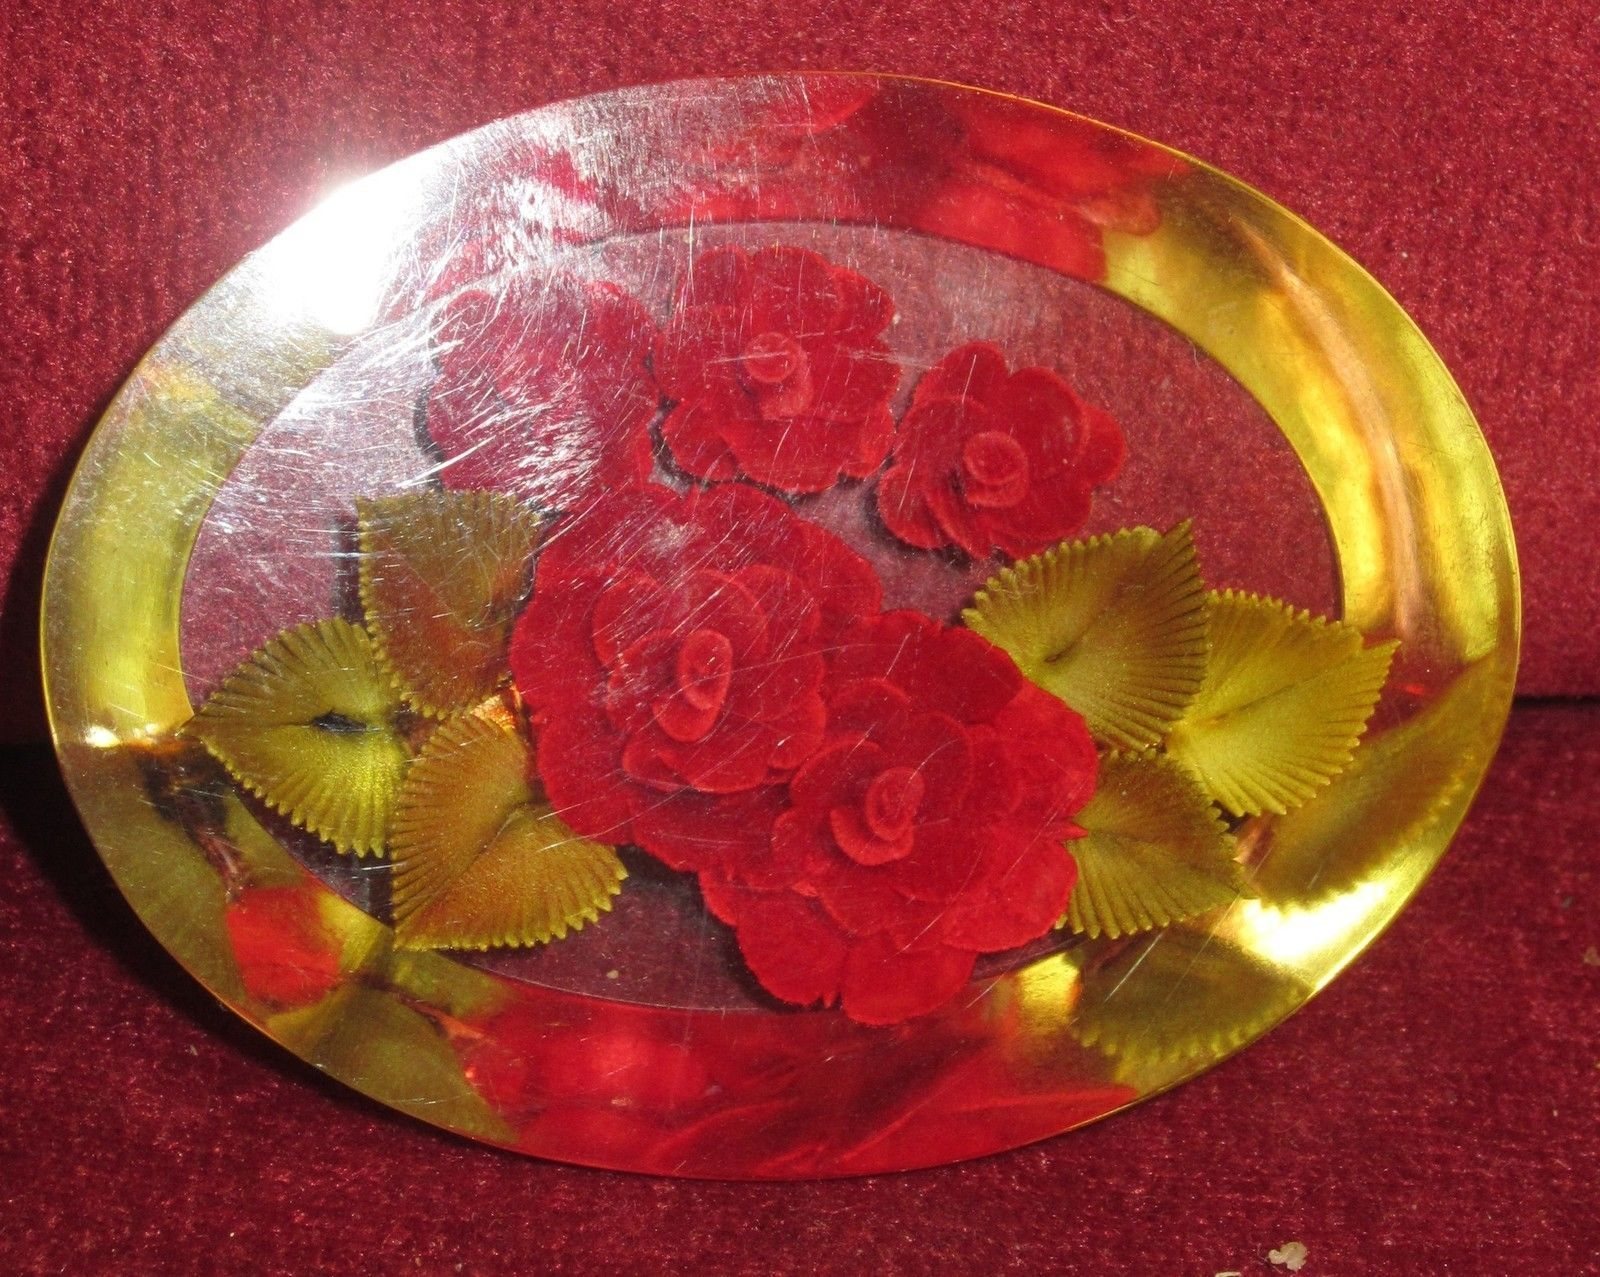 VINTAGE LUCITE BROOCH AND NECKLACE SET - ROSES SET IN LUCITE - VERY PRETTY